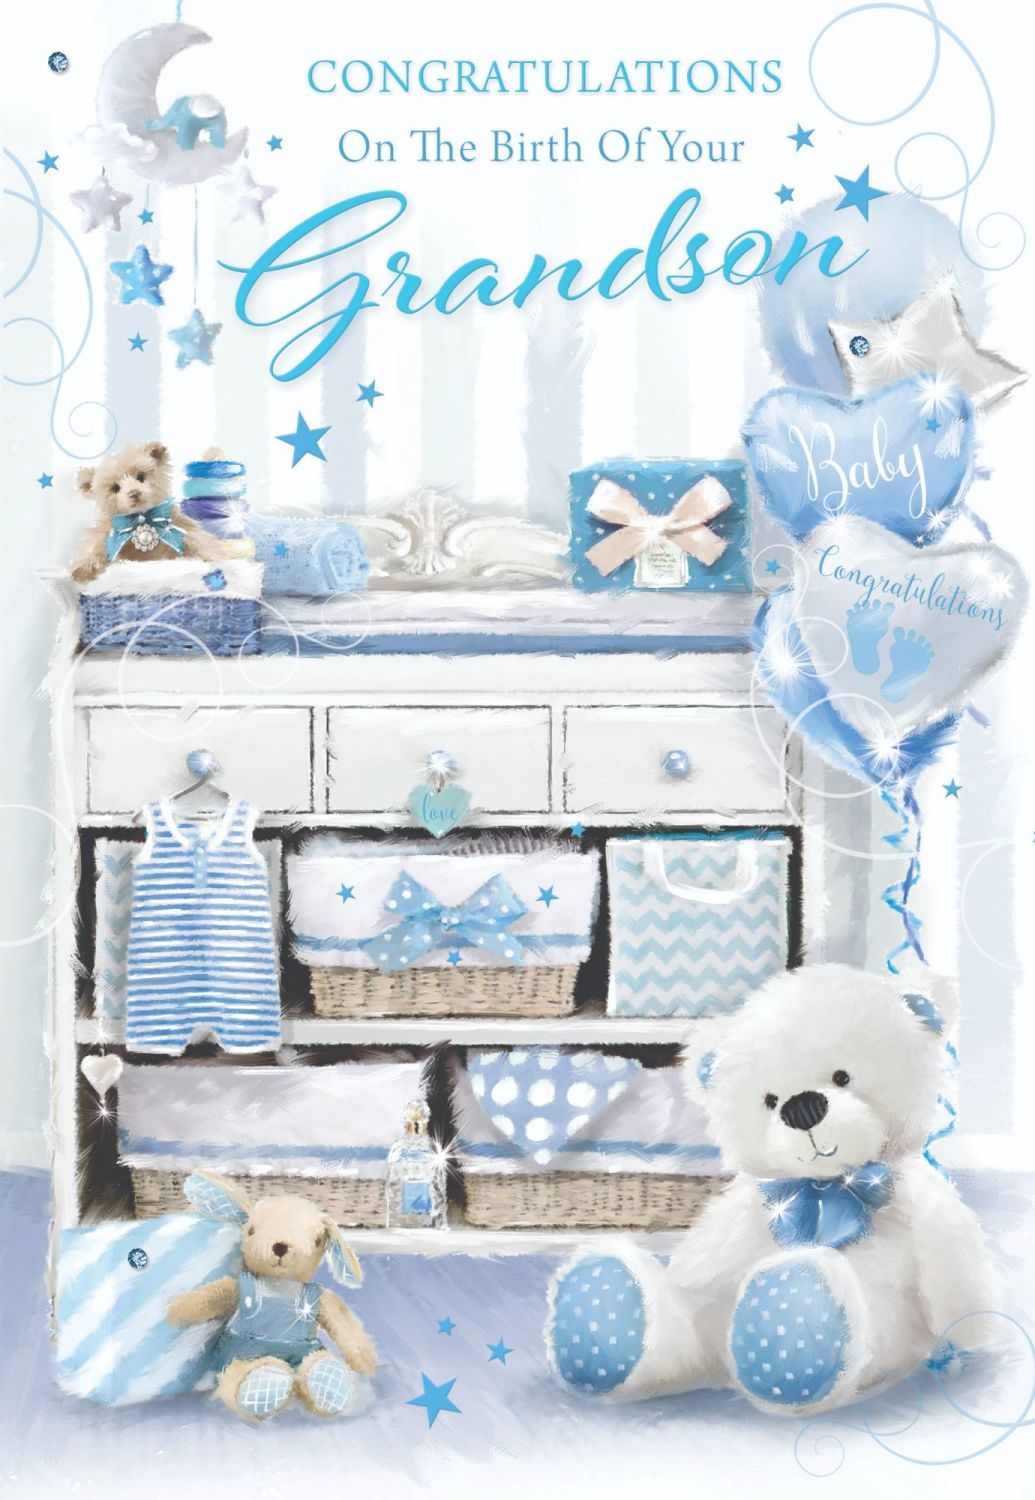 New Grandson Card - CONGRATULATIONS On THE Birth Of Your GRANDSON - Our NEW